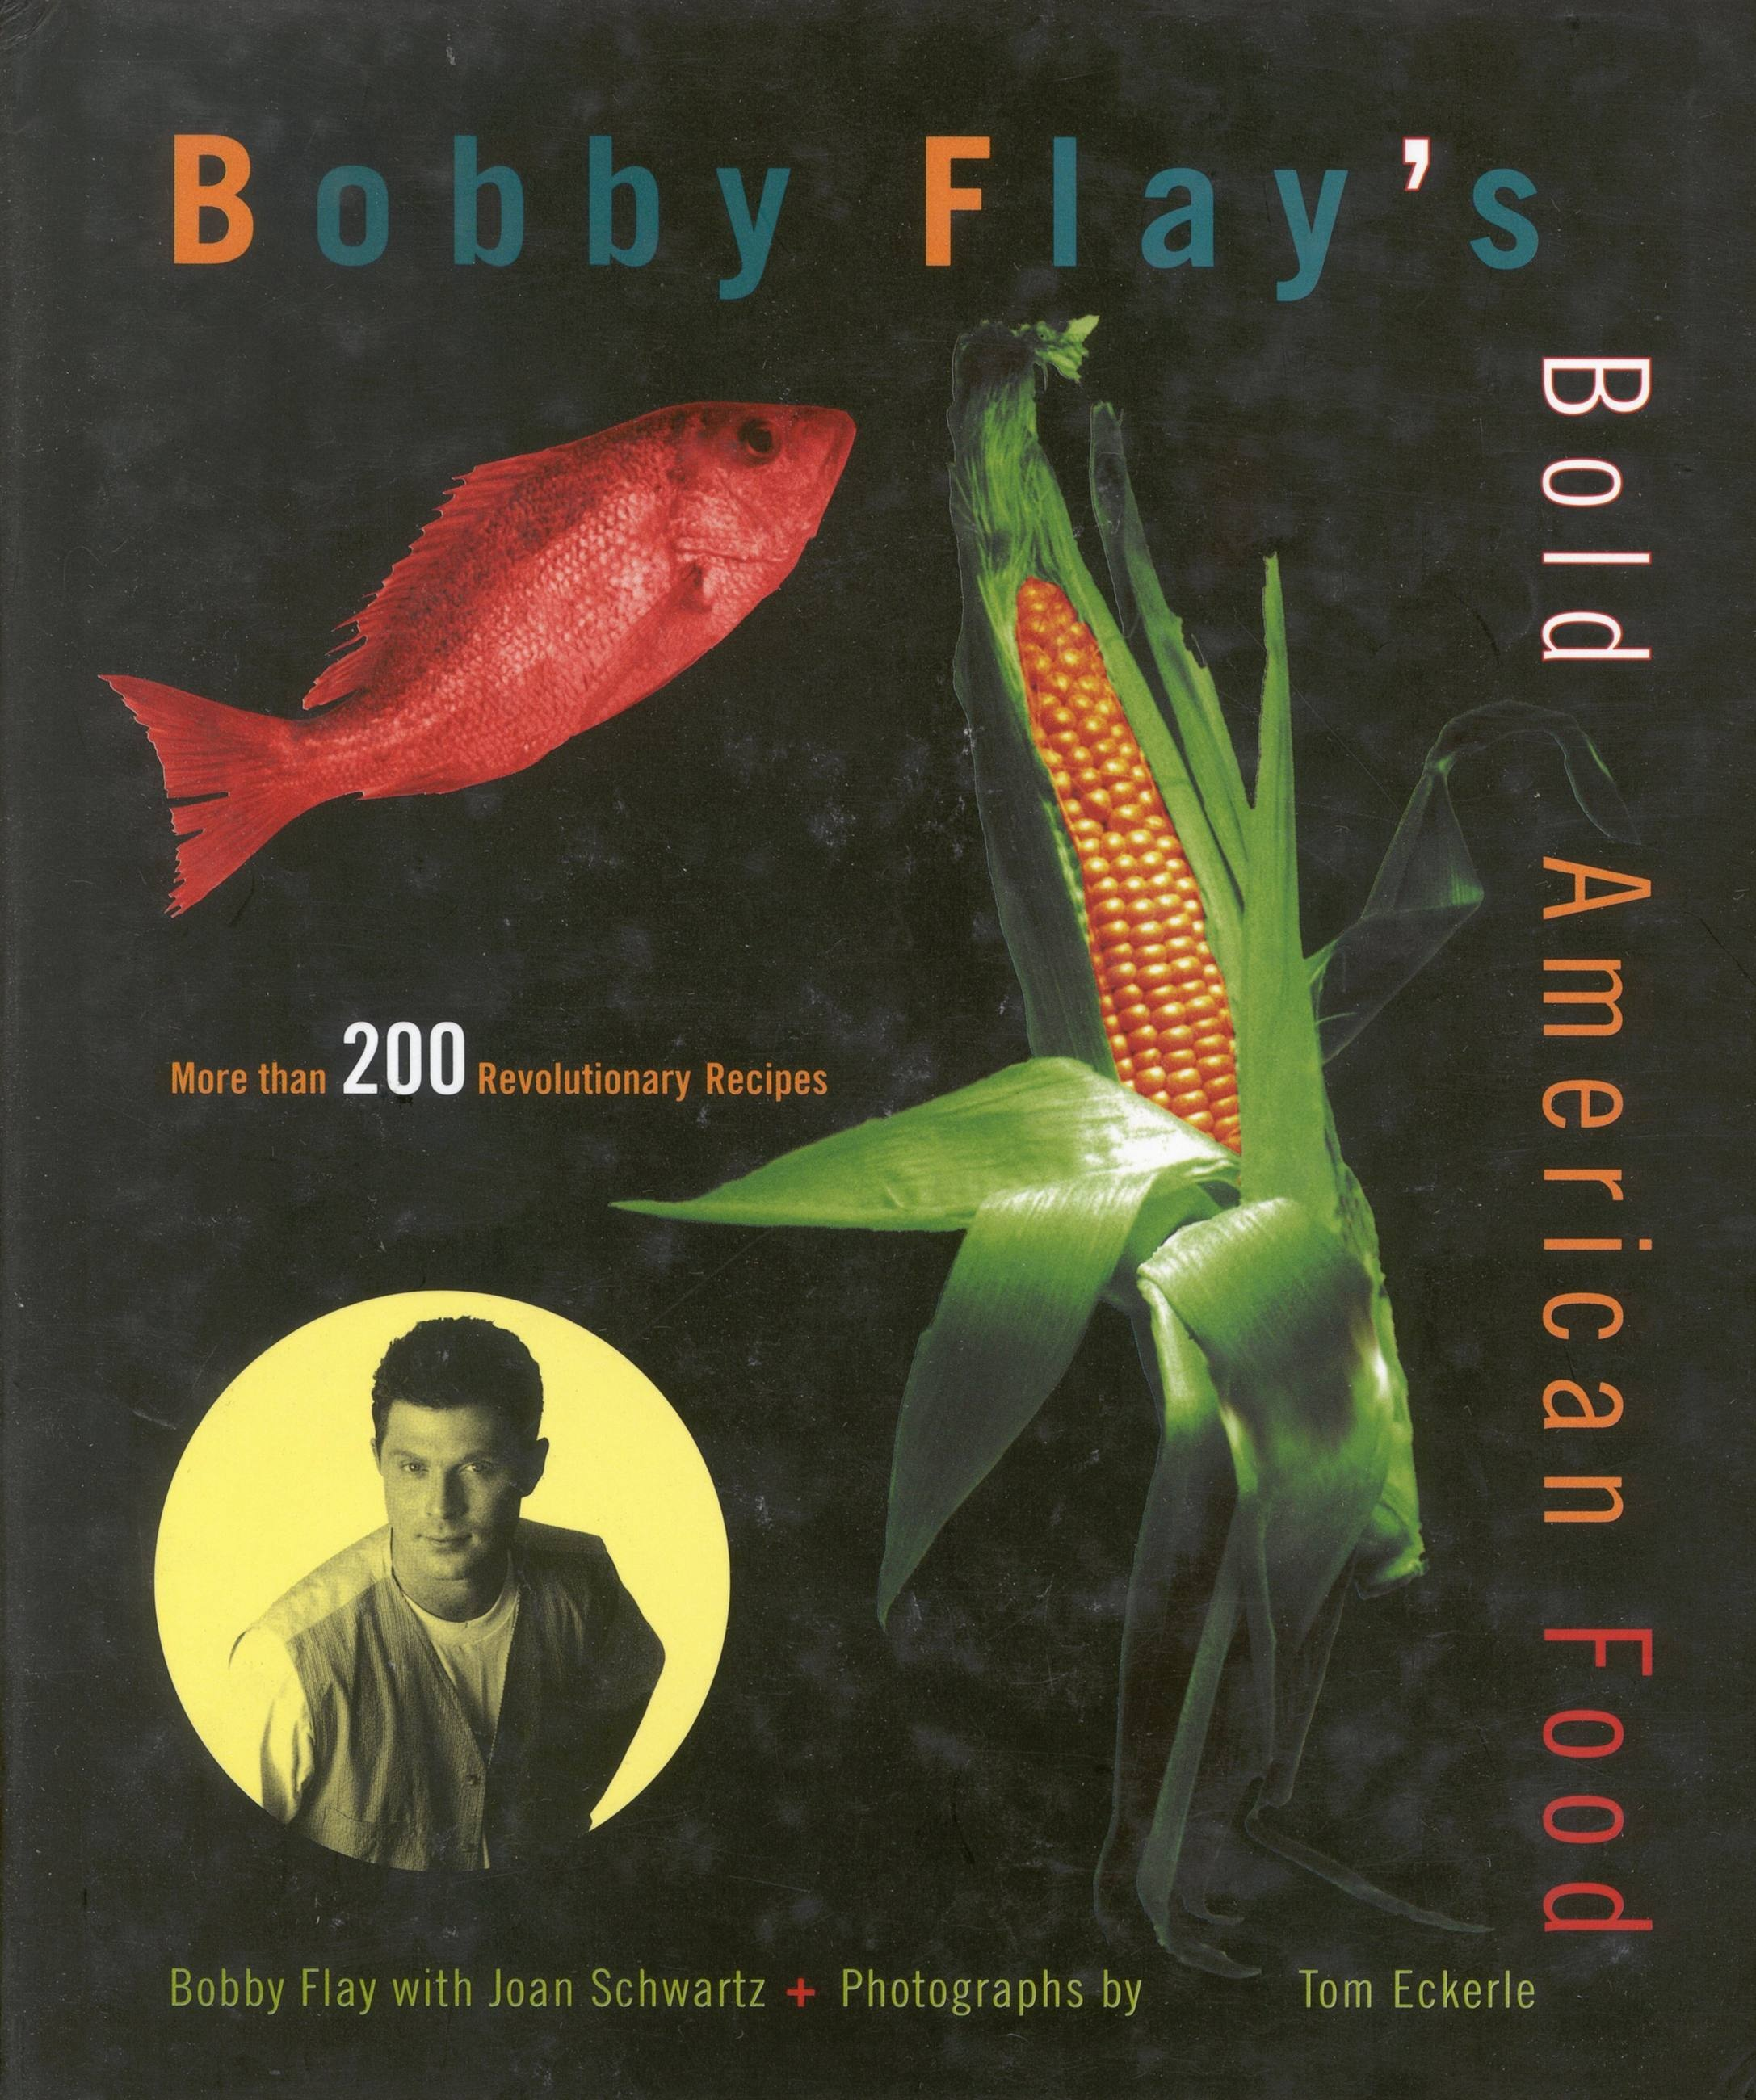 Bobby Flay's Bold American Food